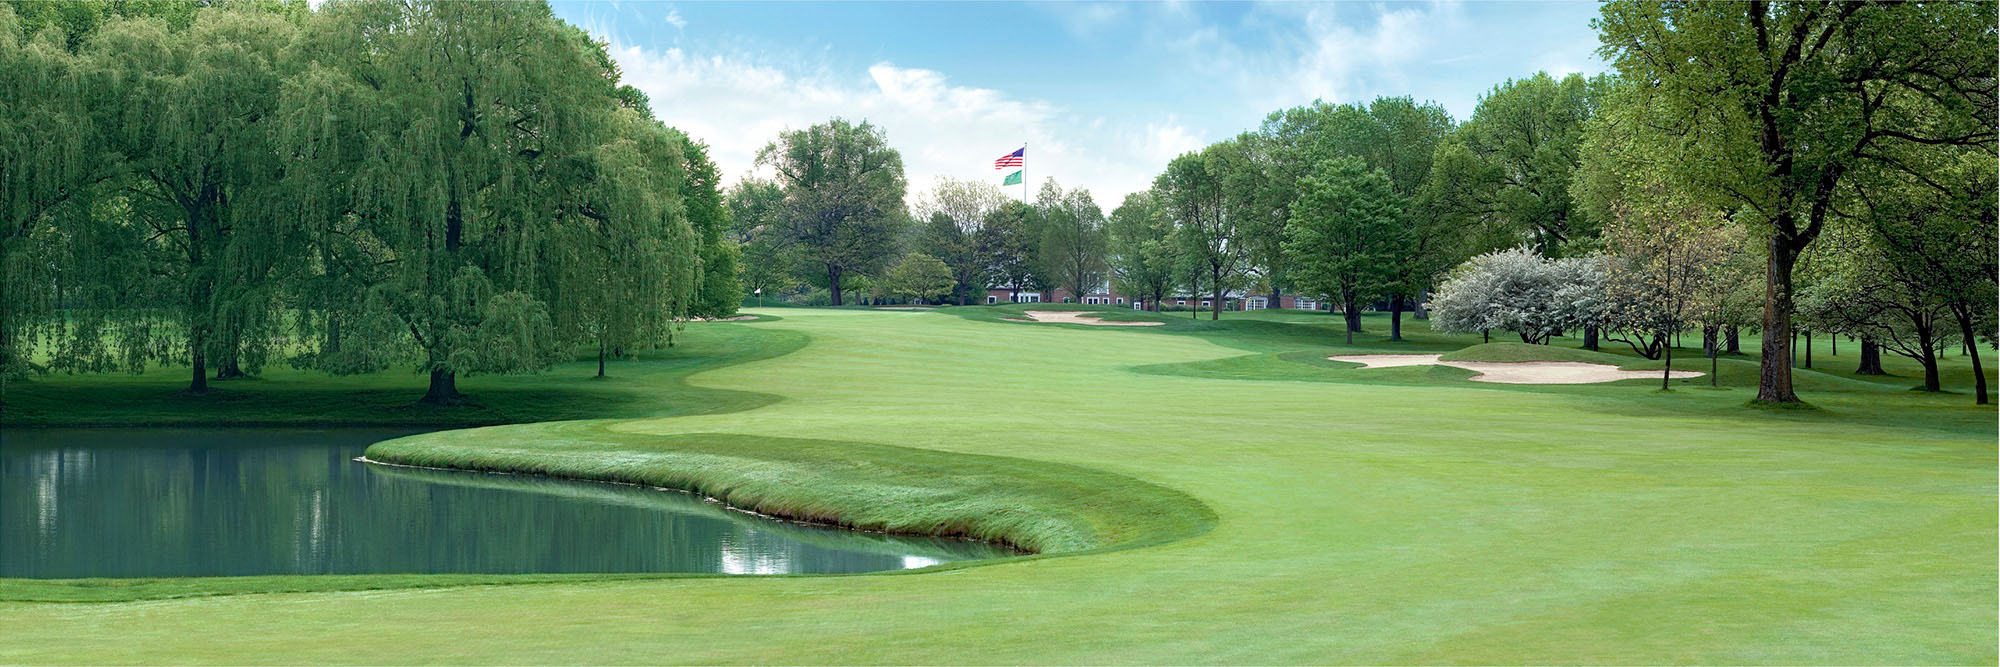 Golf Course Image - Knollwood No. 9